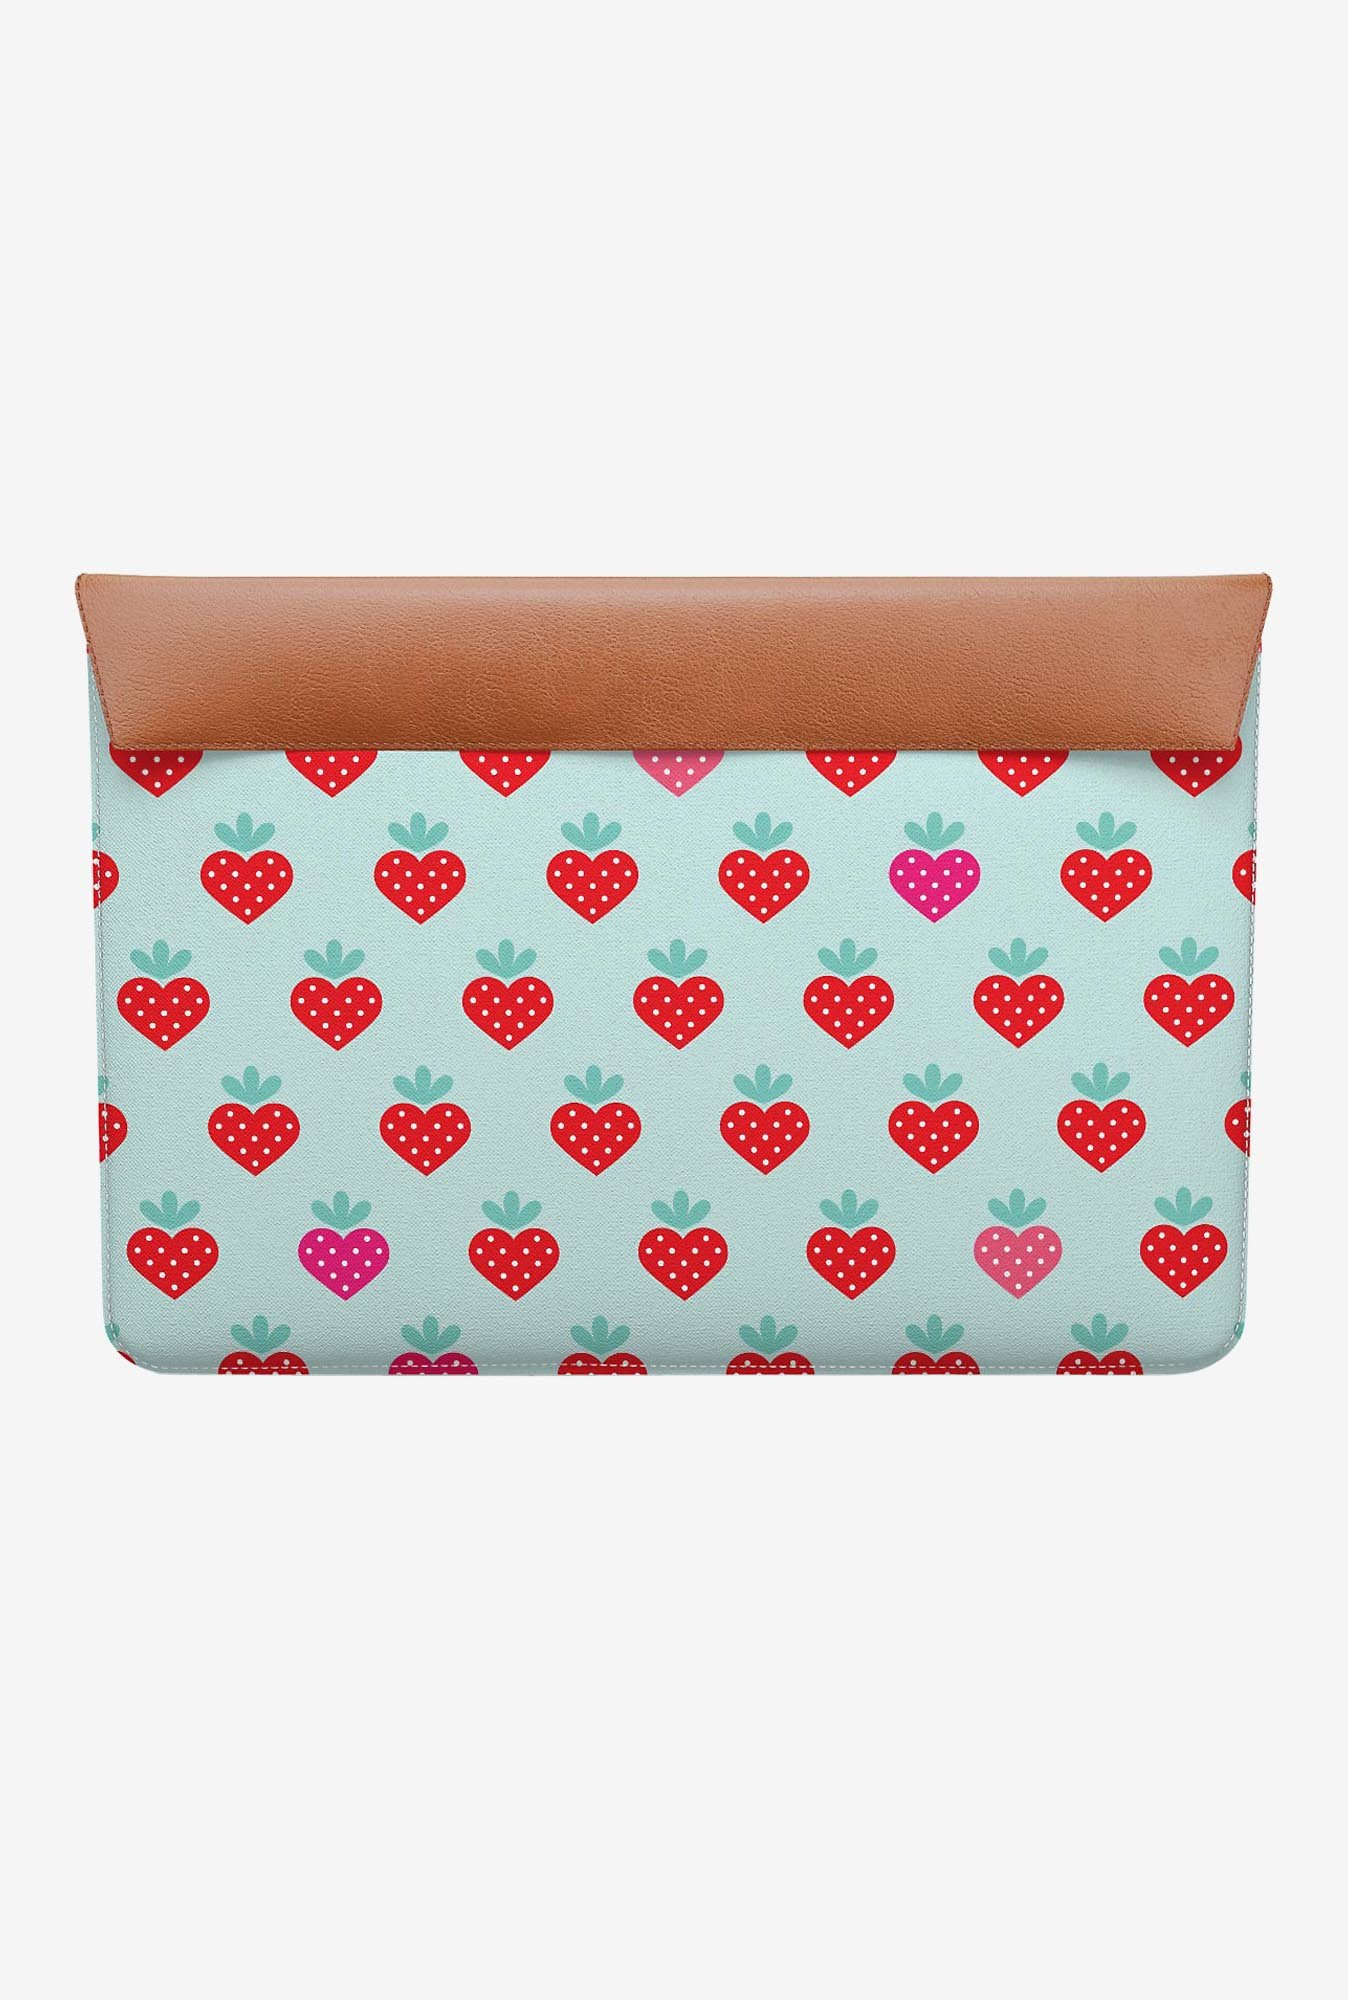 "DailyObjects Strawberry MacBook Pro 13"" Envelope Sleeve"